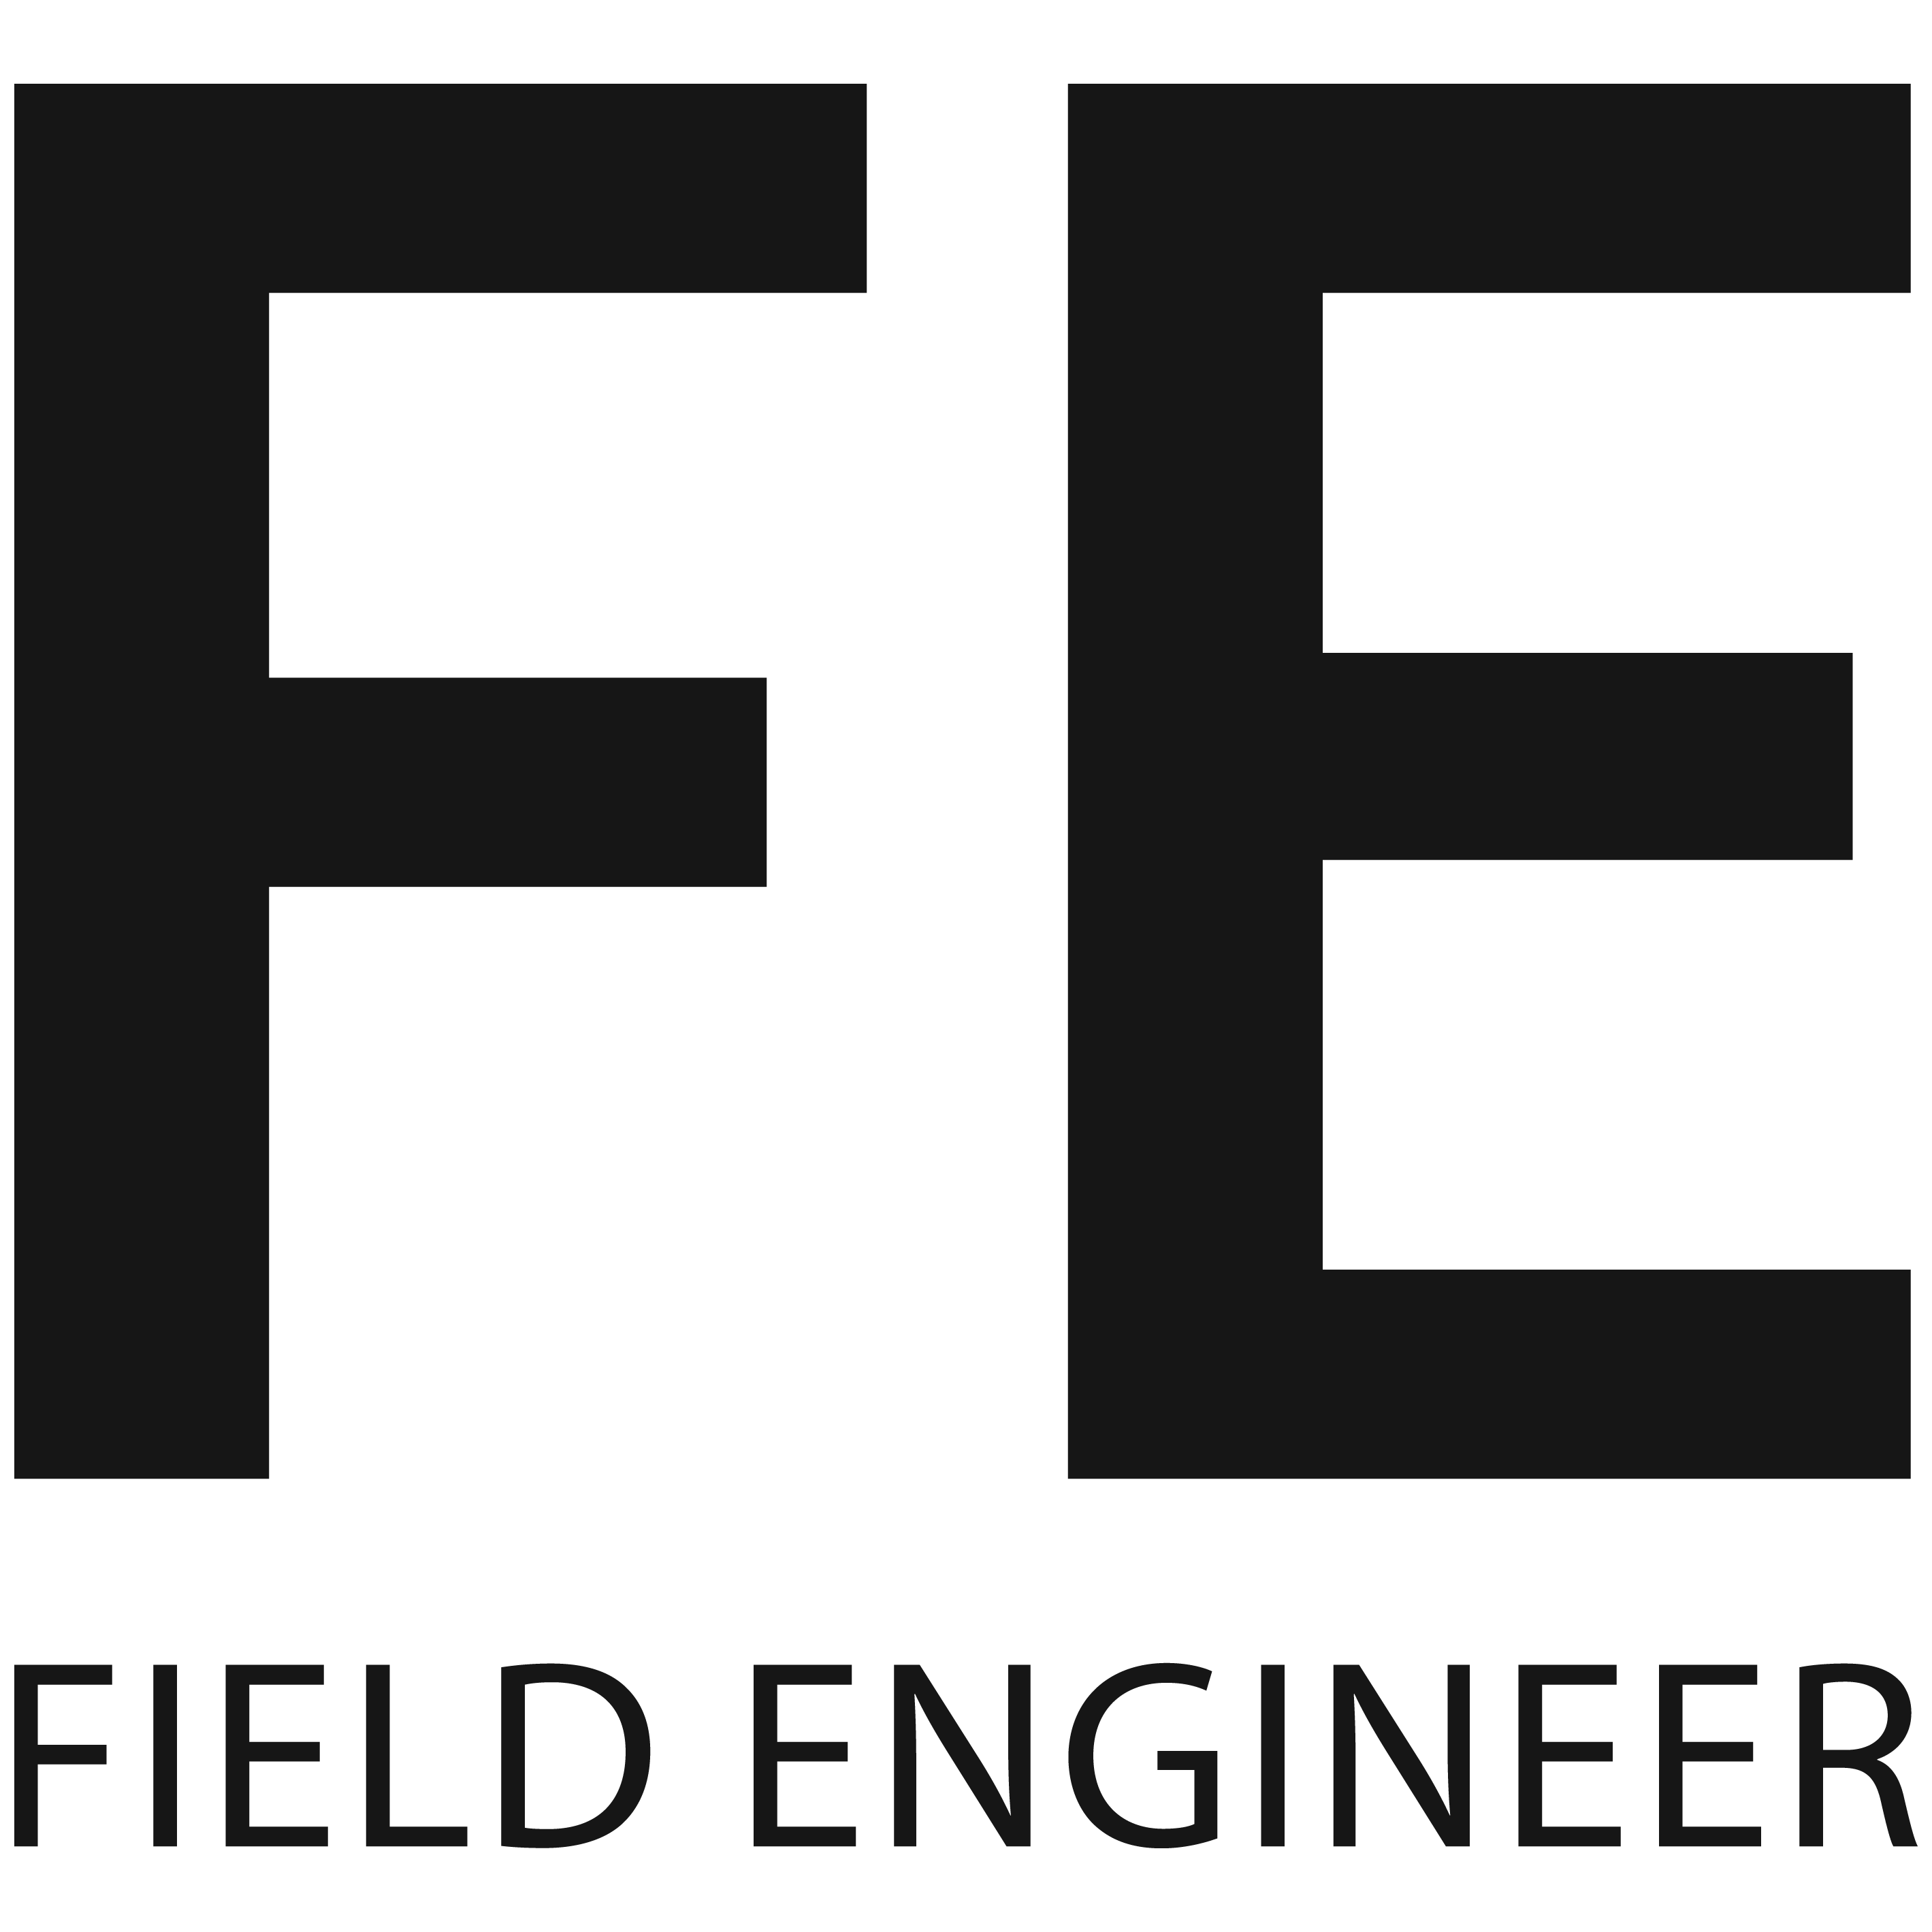 Field Engineer Inc. - New York, NY 10005 - (212)858-0640 | ShowMeLocal.com